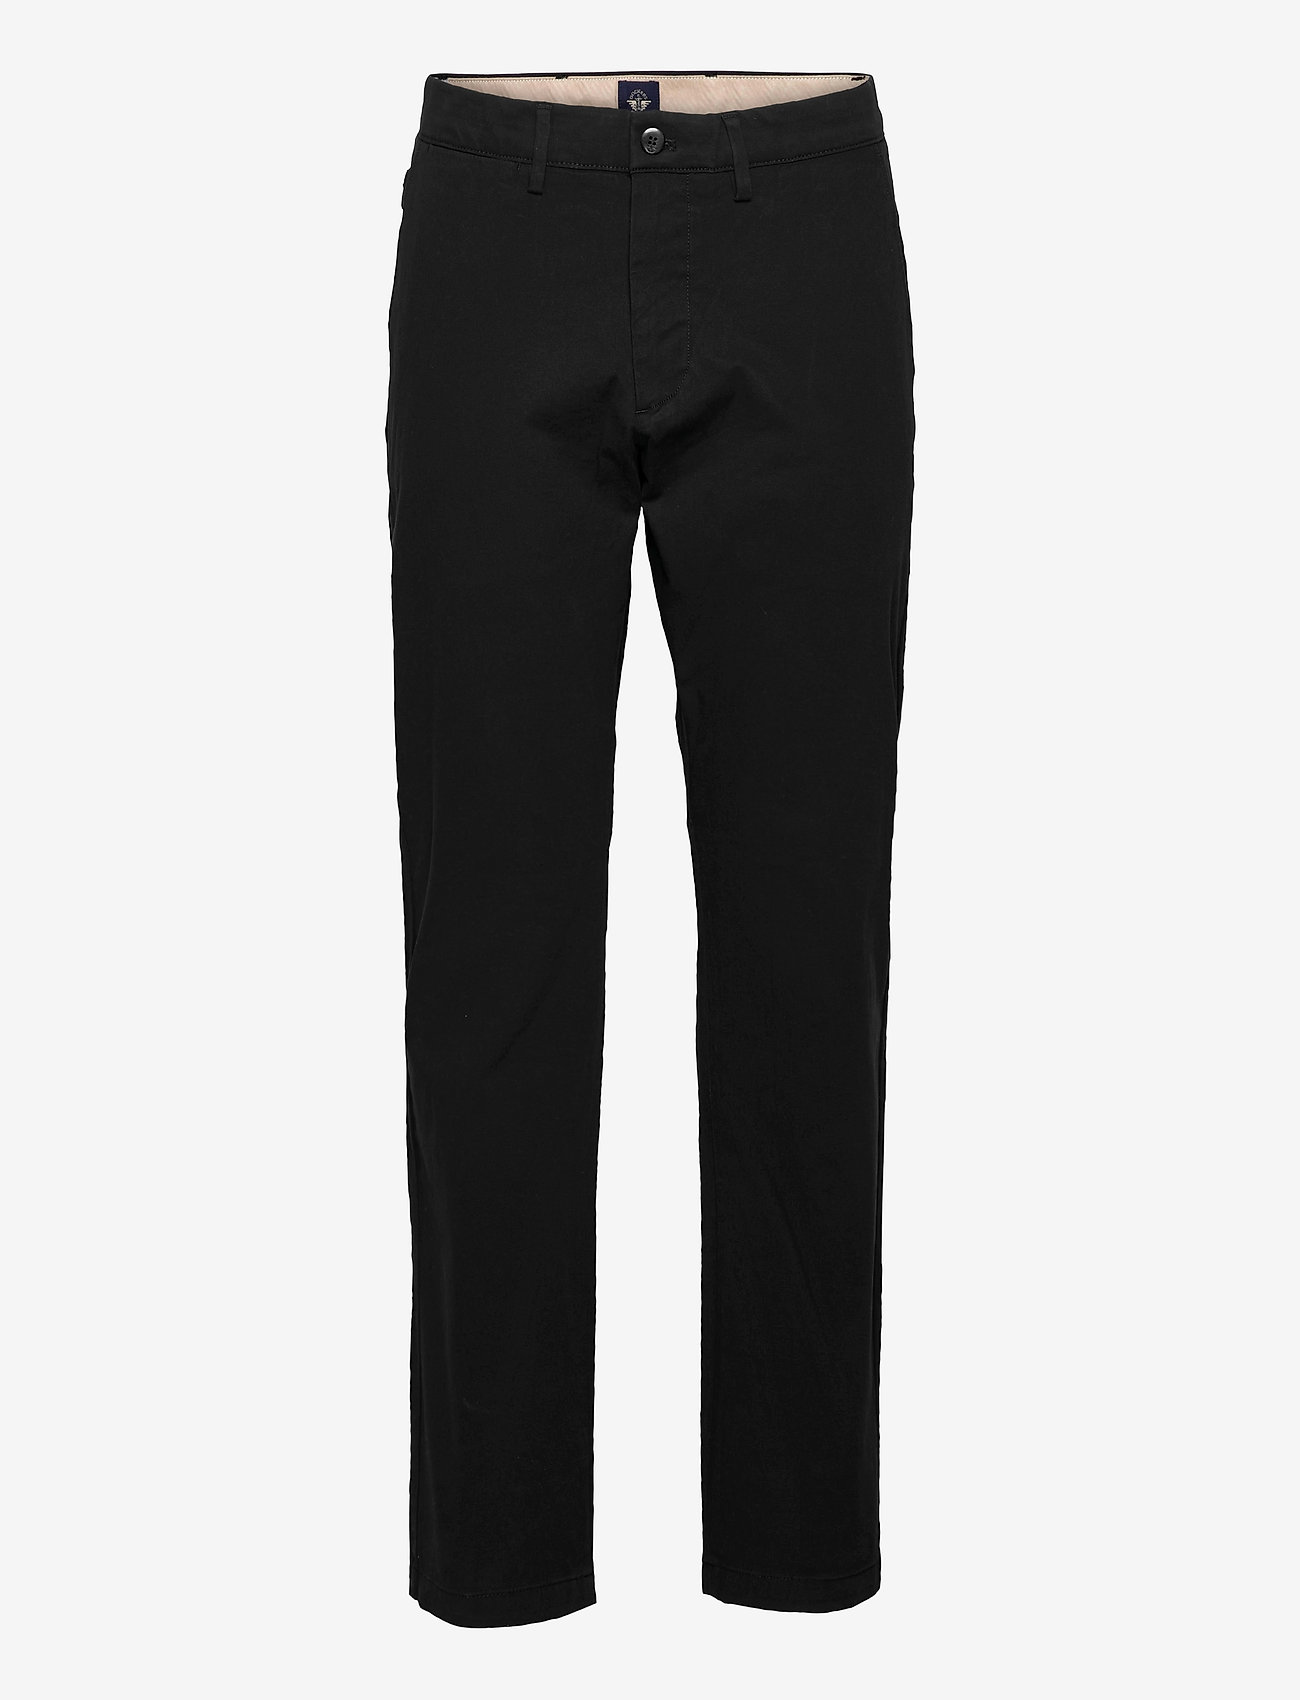 Dockers - SMART 360 CHINO STRAIGHT BLACK - chinosy - blacks - 0